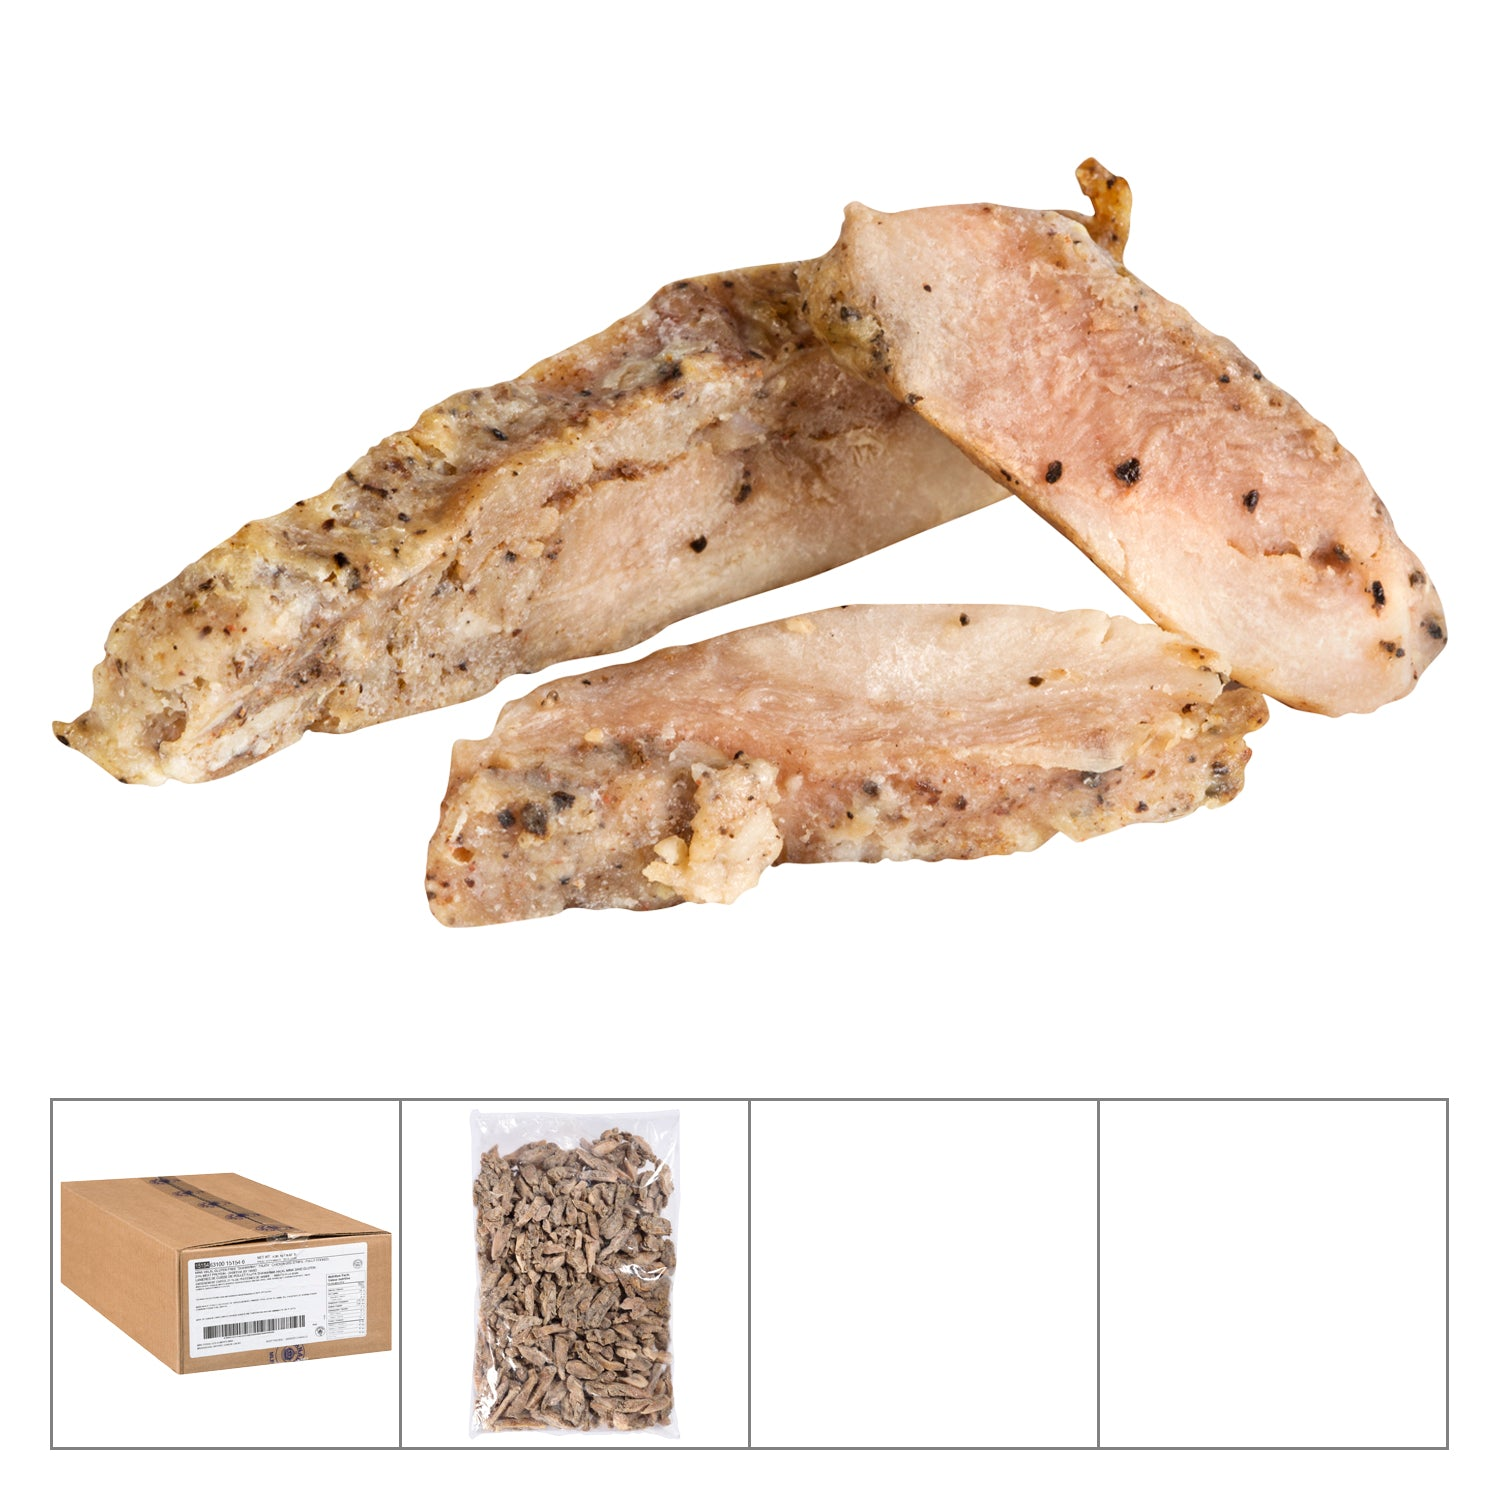 Mina Frozen Fully Cooked Chicken Shawarma Meat 2 kg - 2 Pack [$21.50/kg]